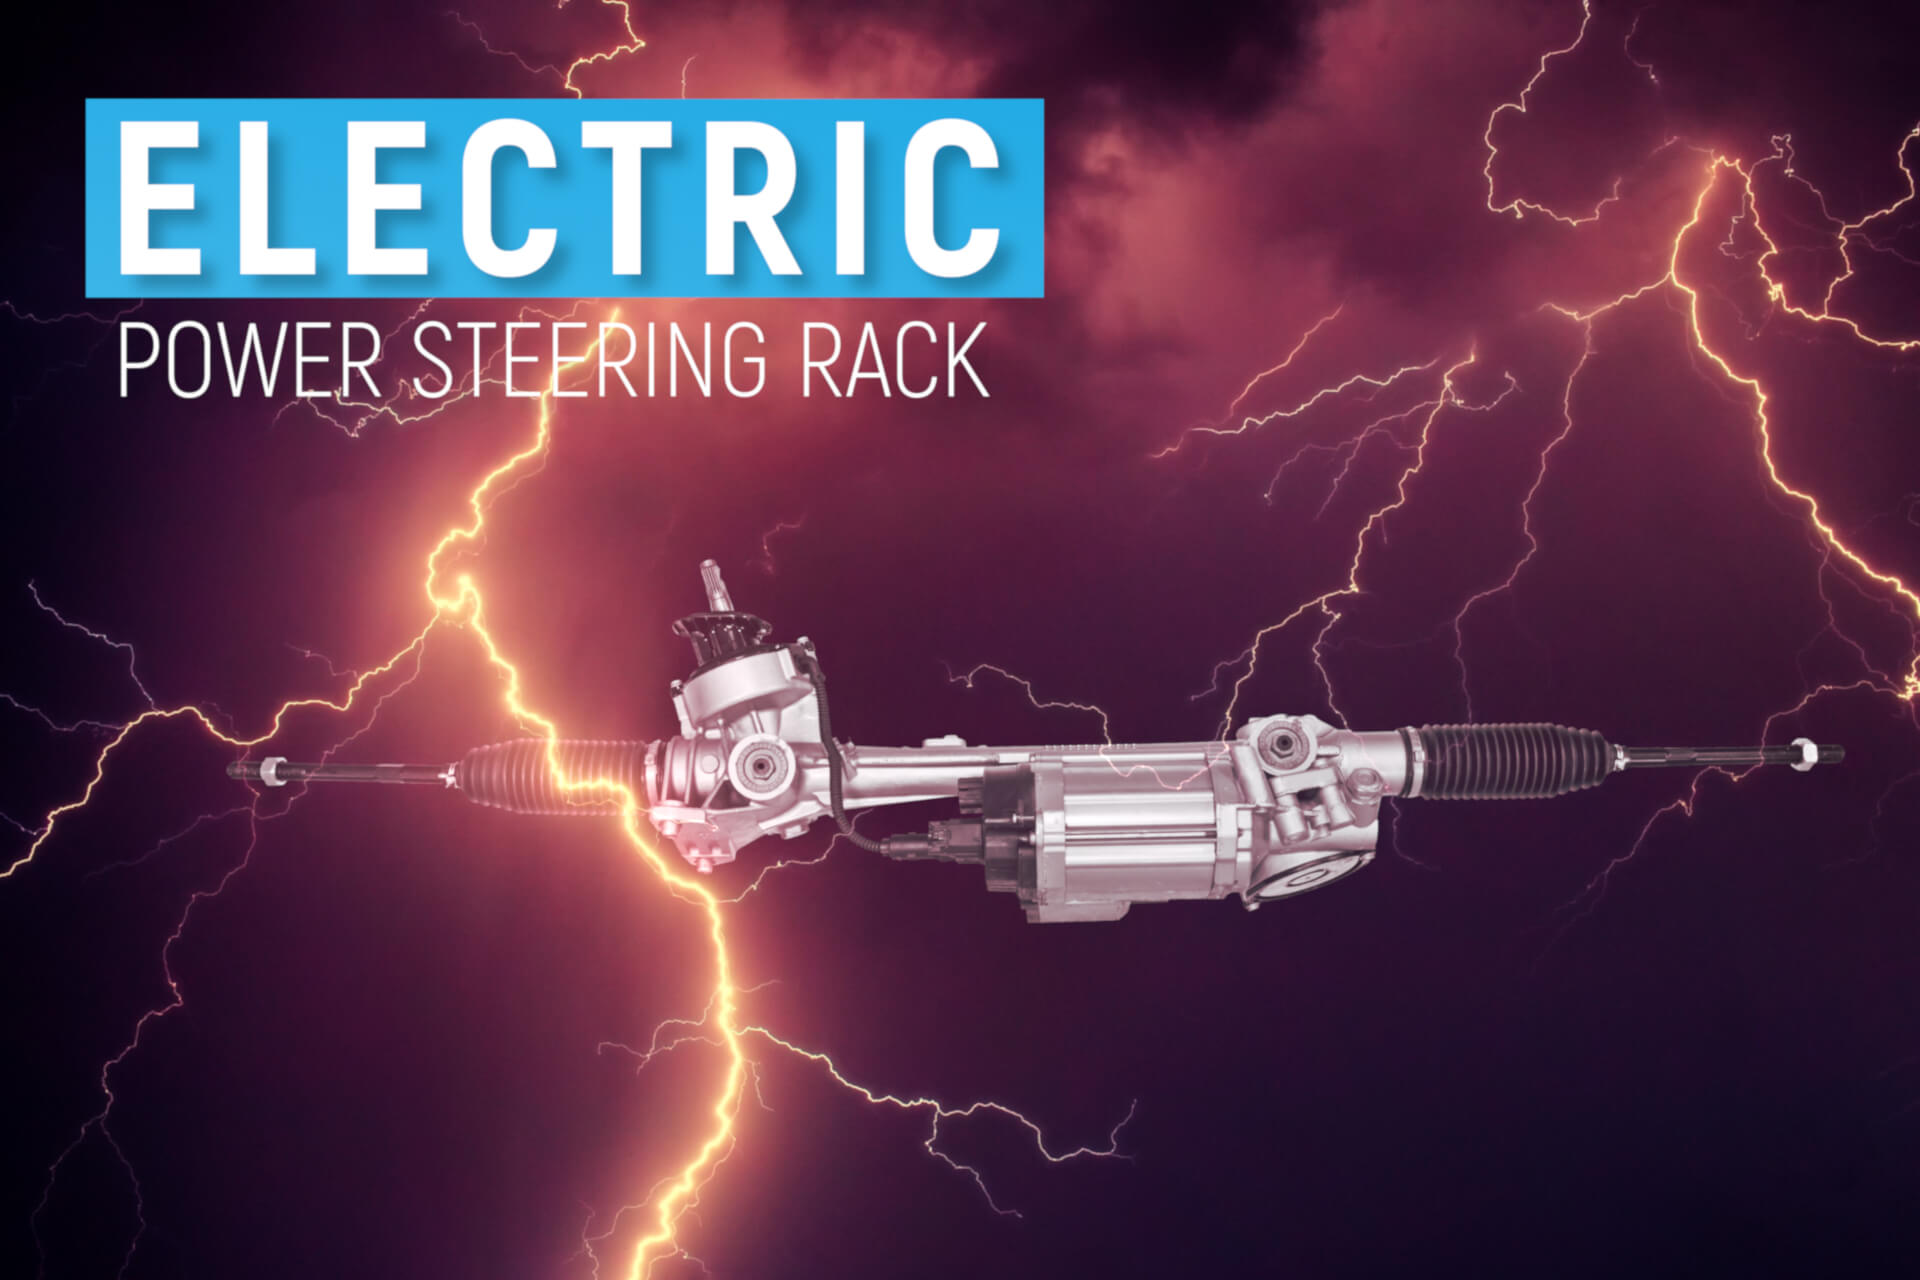 Electric power steering uses electric components to make steering easier.